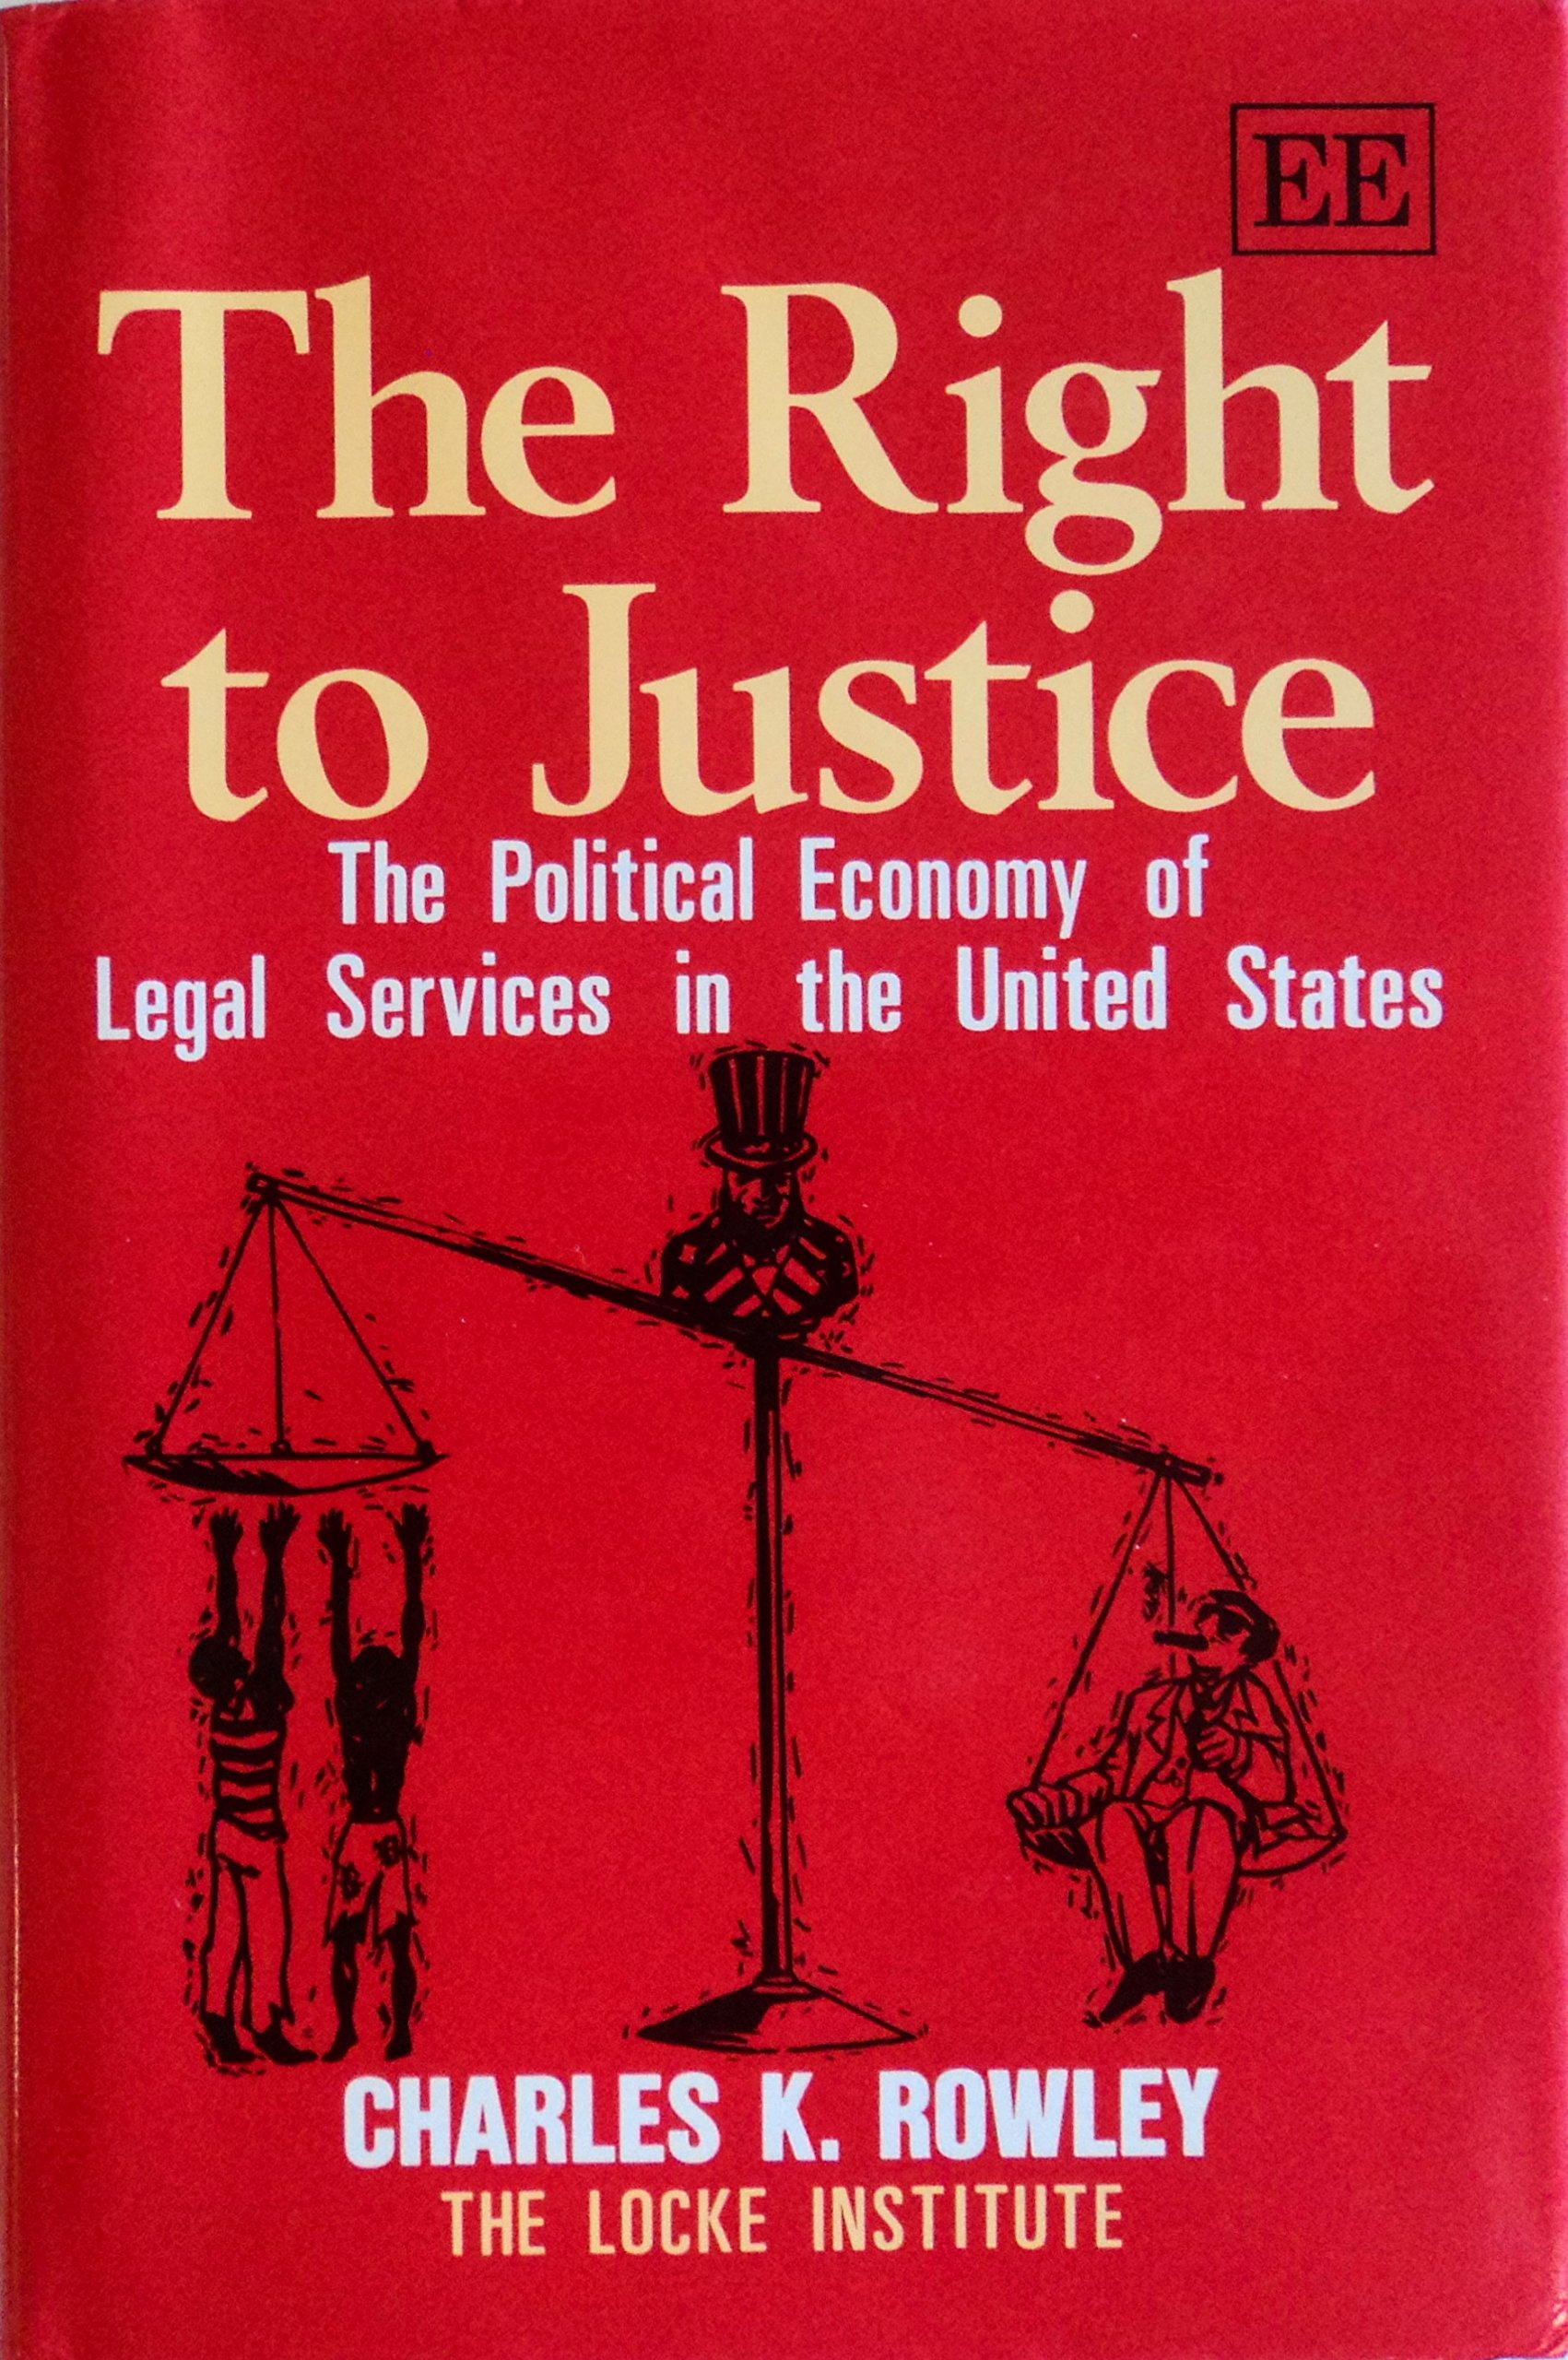 Rowley, C: THE RIGHT TO JUSTICE: Political Economy of Legal Services in the United States The Locke Institute series: Amazon.es: Rowley, Charles K.: Libros en idiomas extranjeros